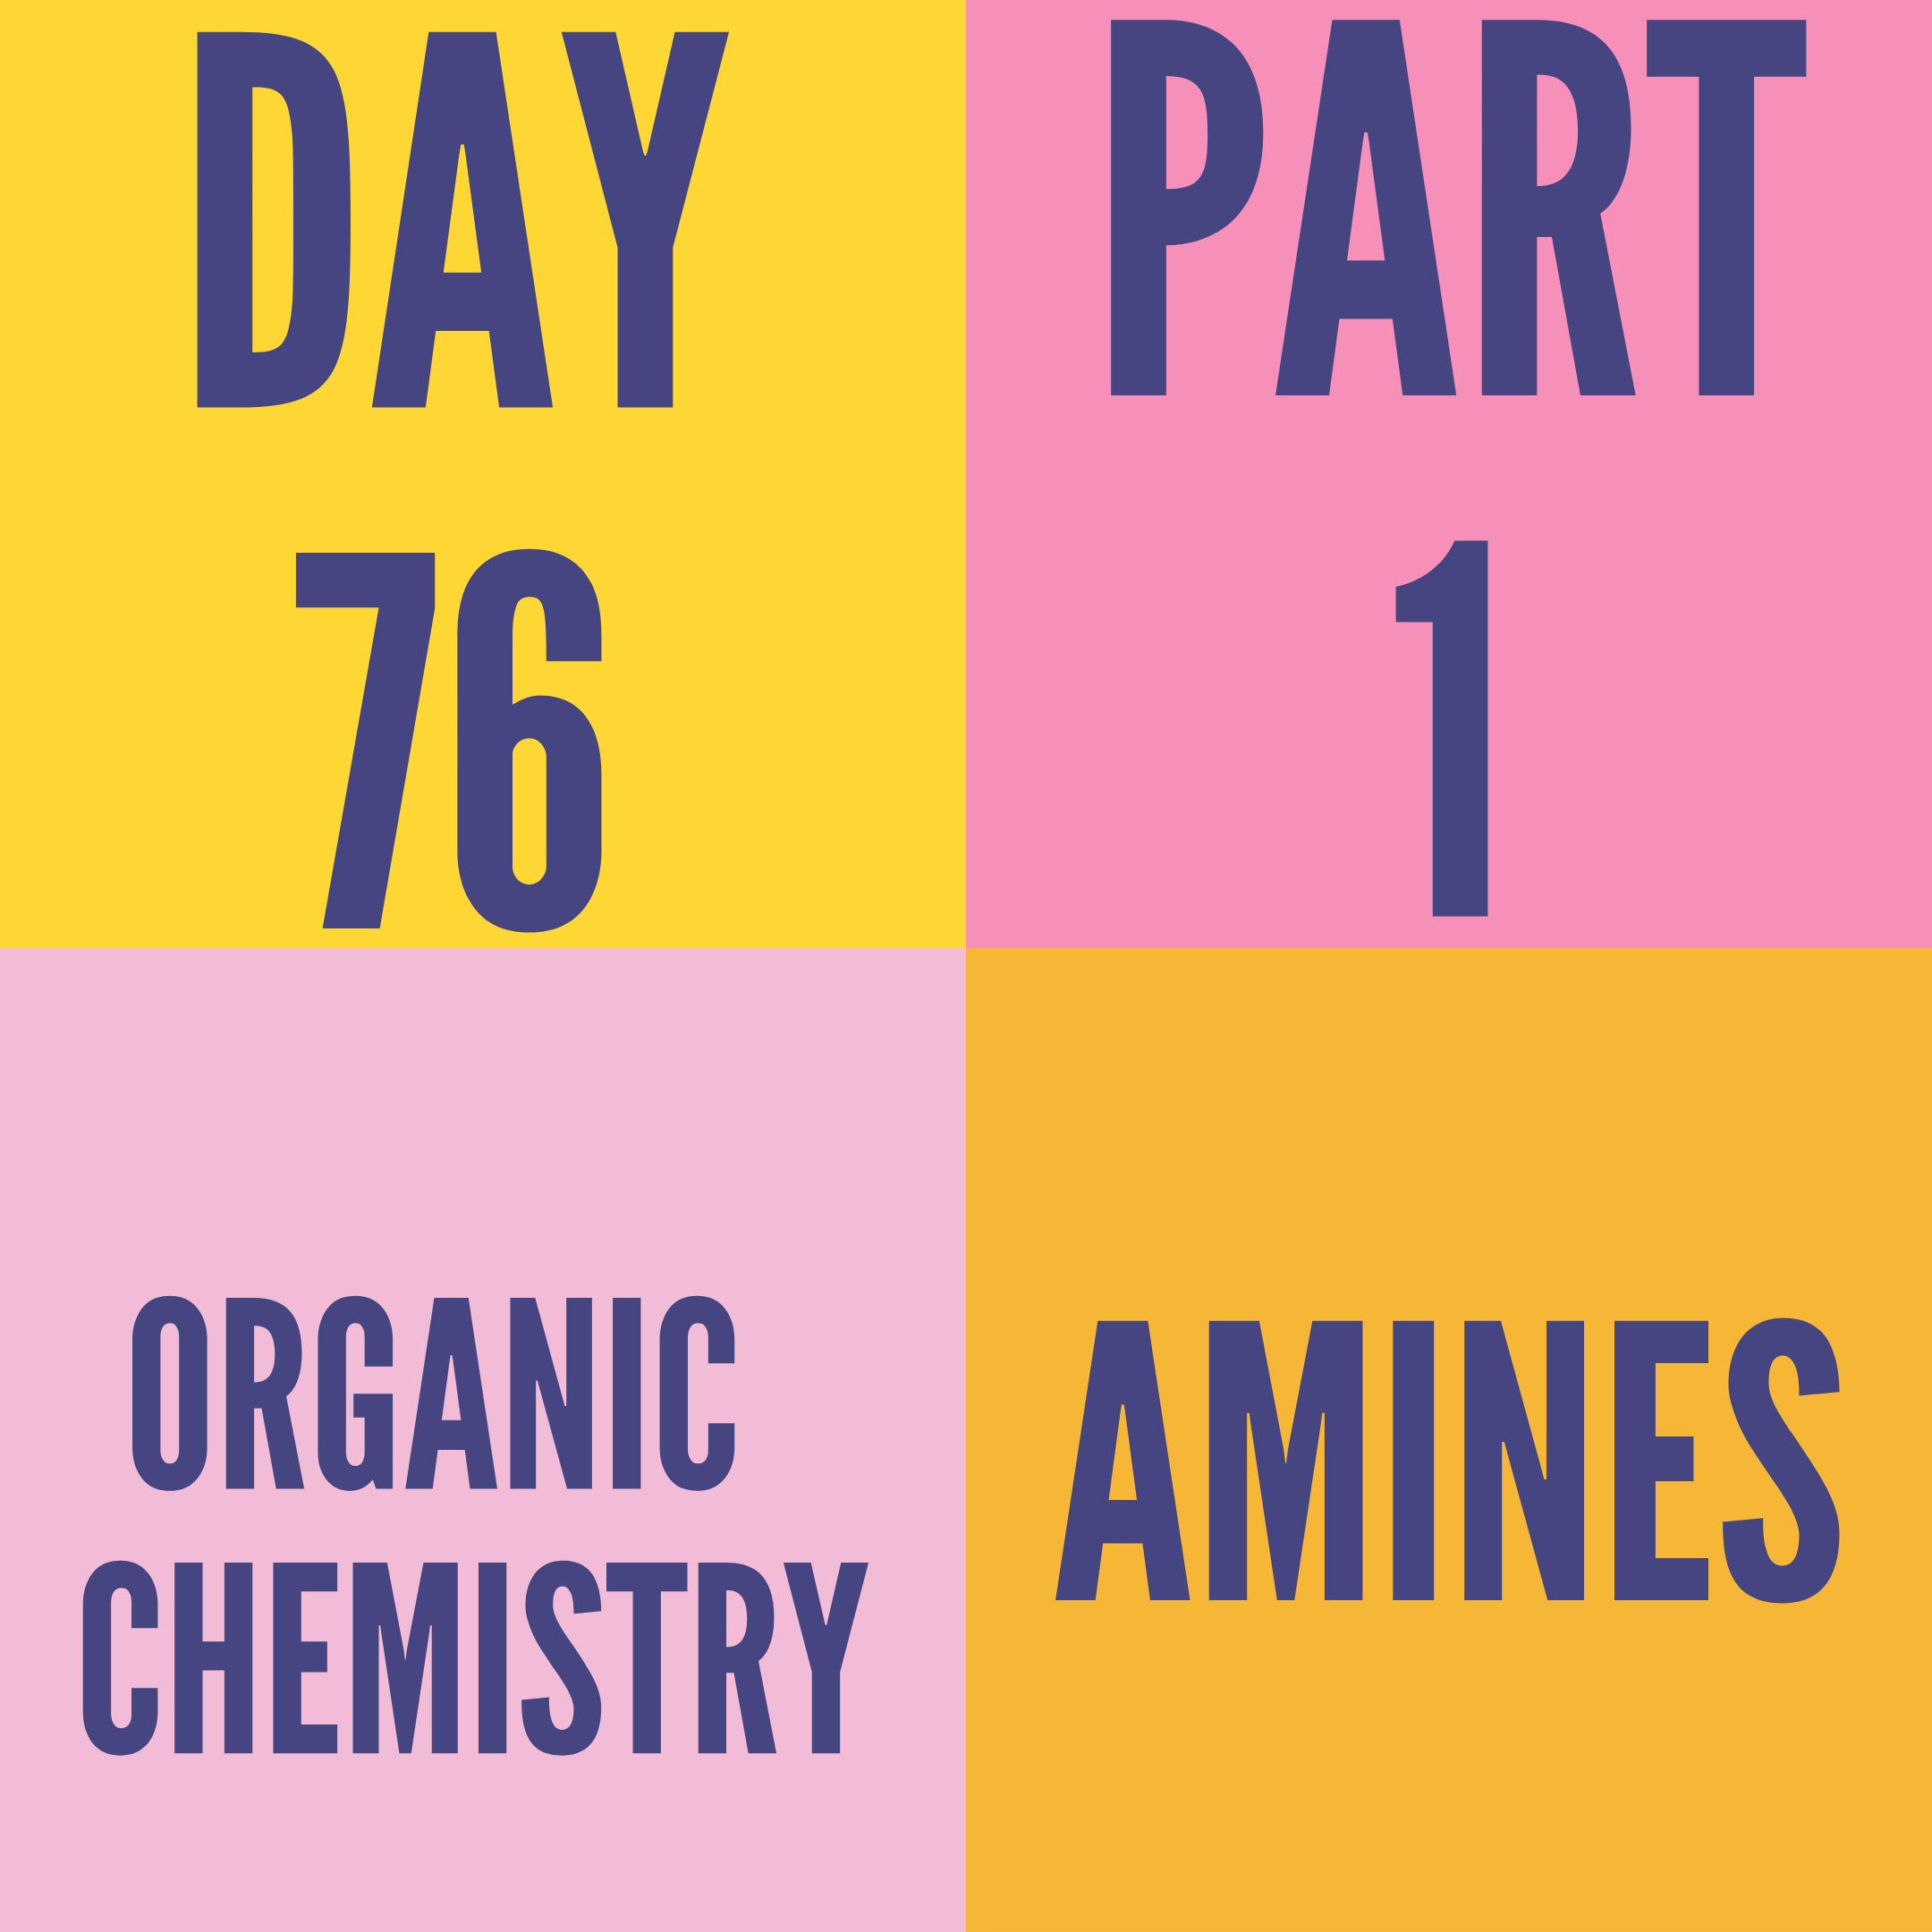 DAY-76 PART-1 AMINES